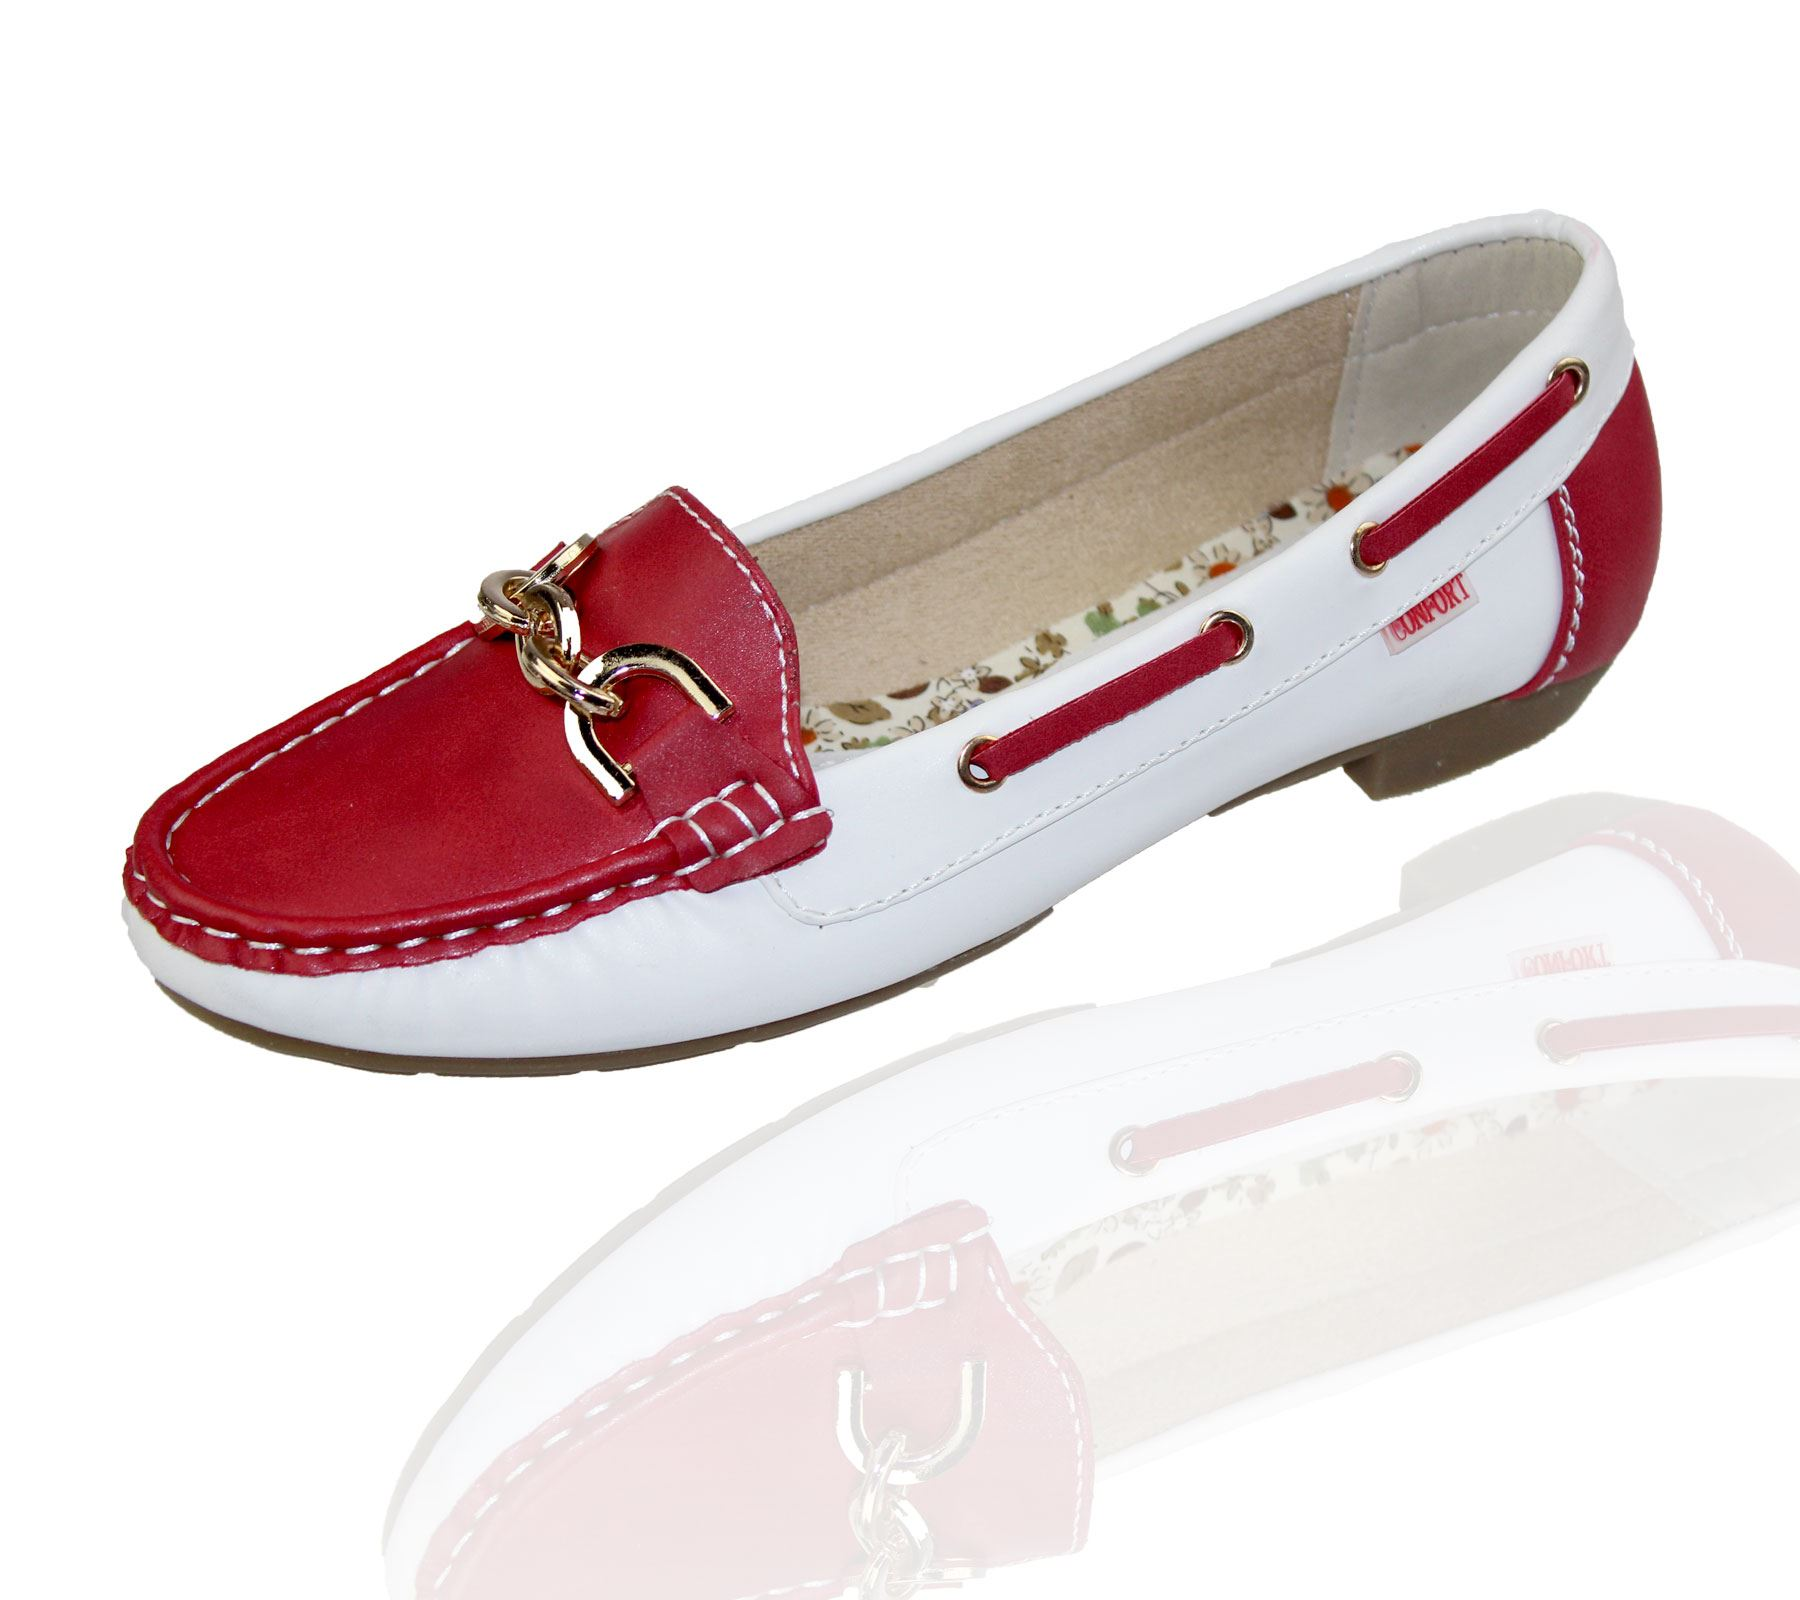 WOMENS LADIES LOAFERS FLAT CASUAL COMFORT OFFICE WORK TASSEL CLASSIC PUMPS SHOES